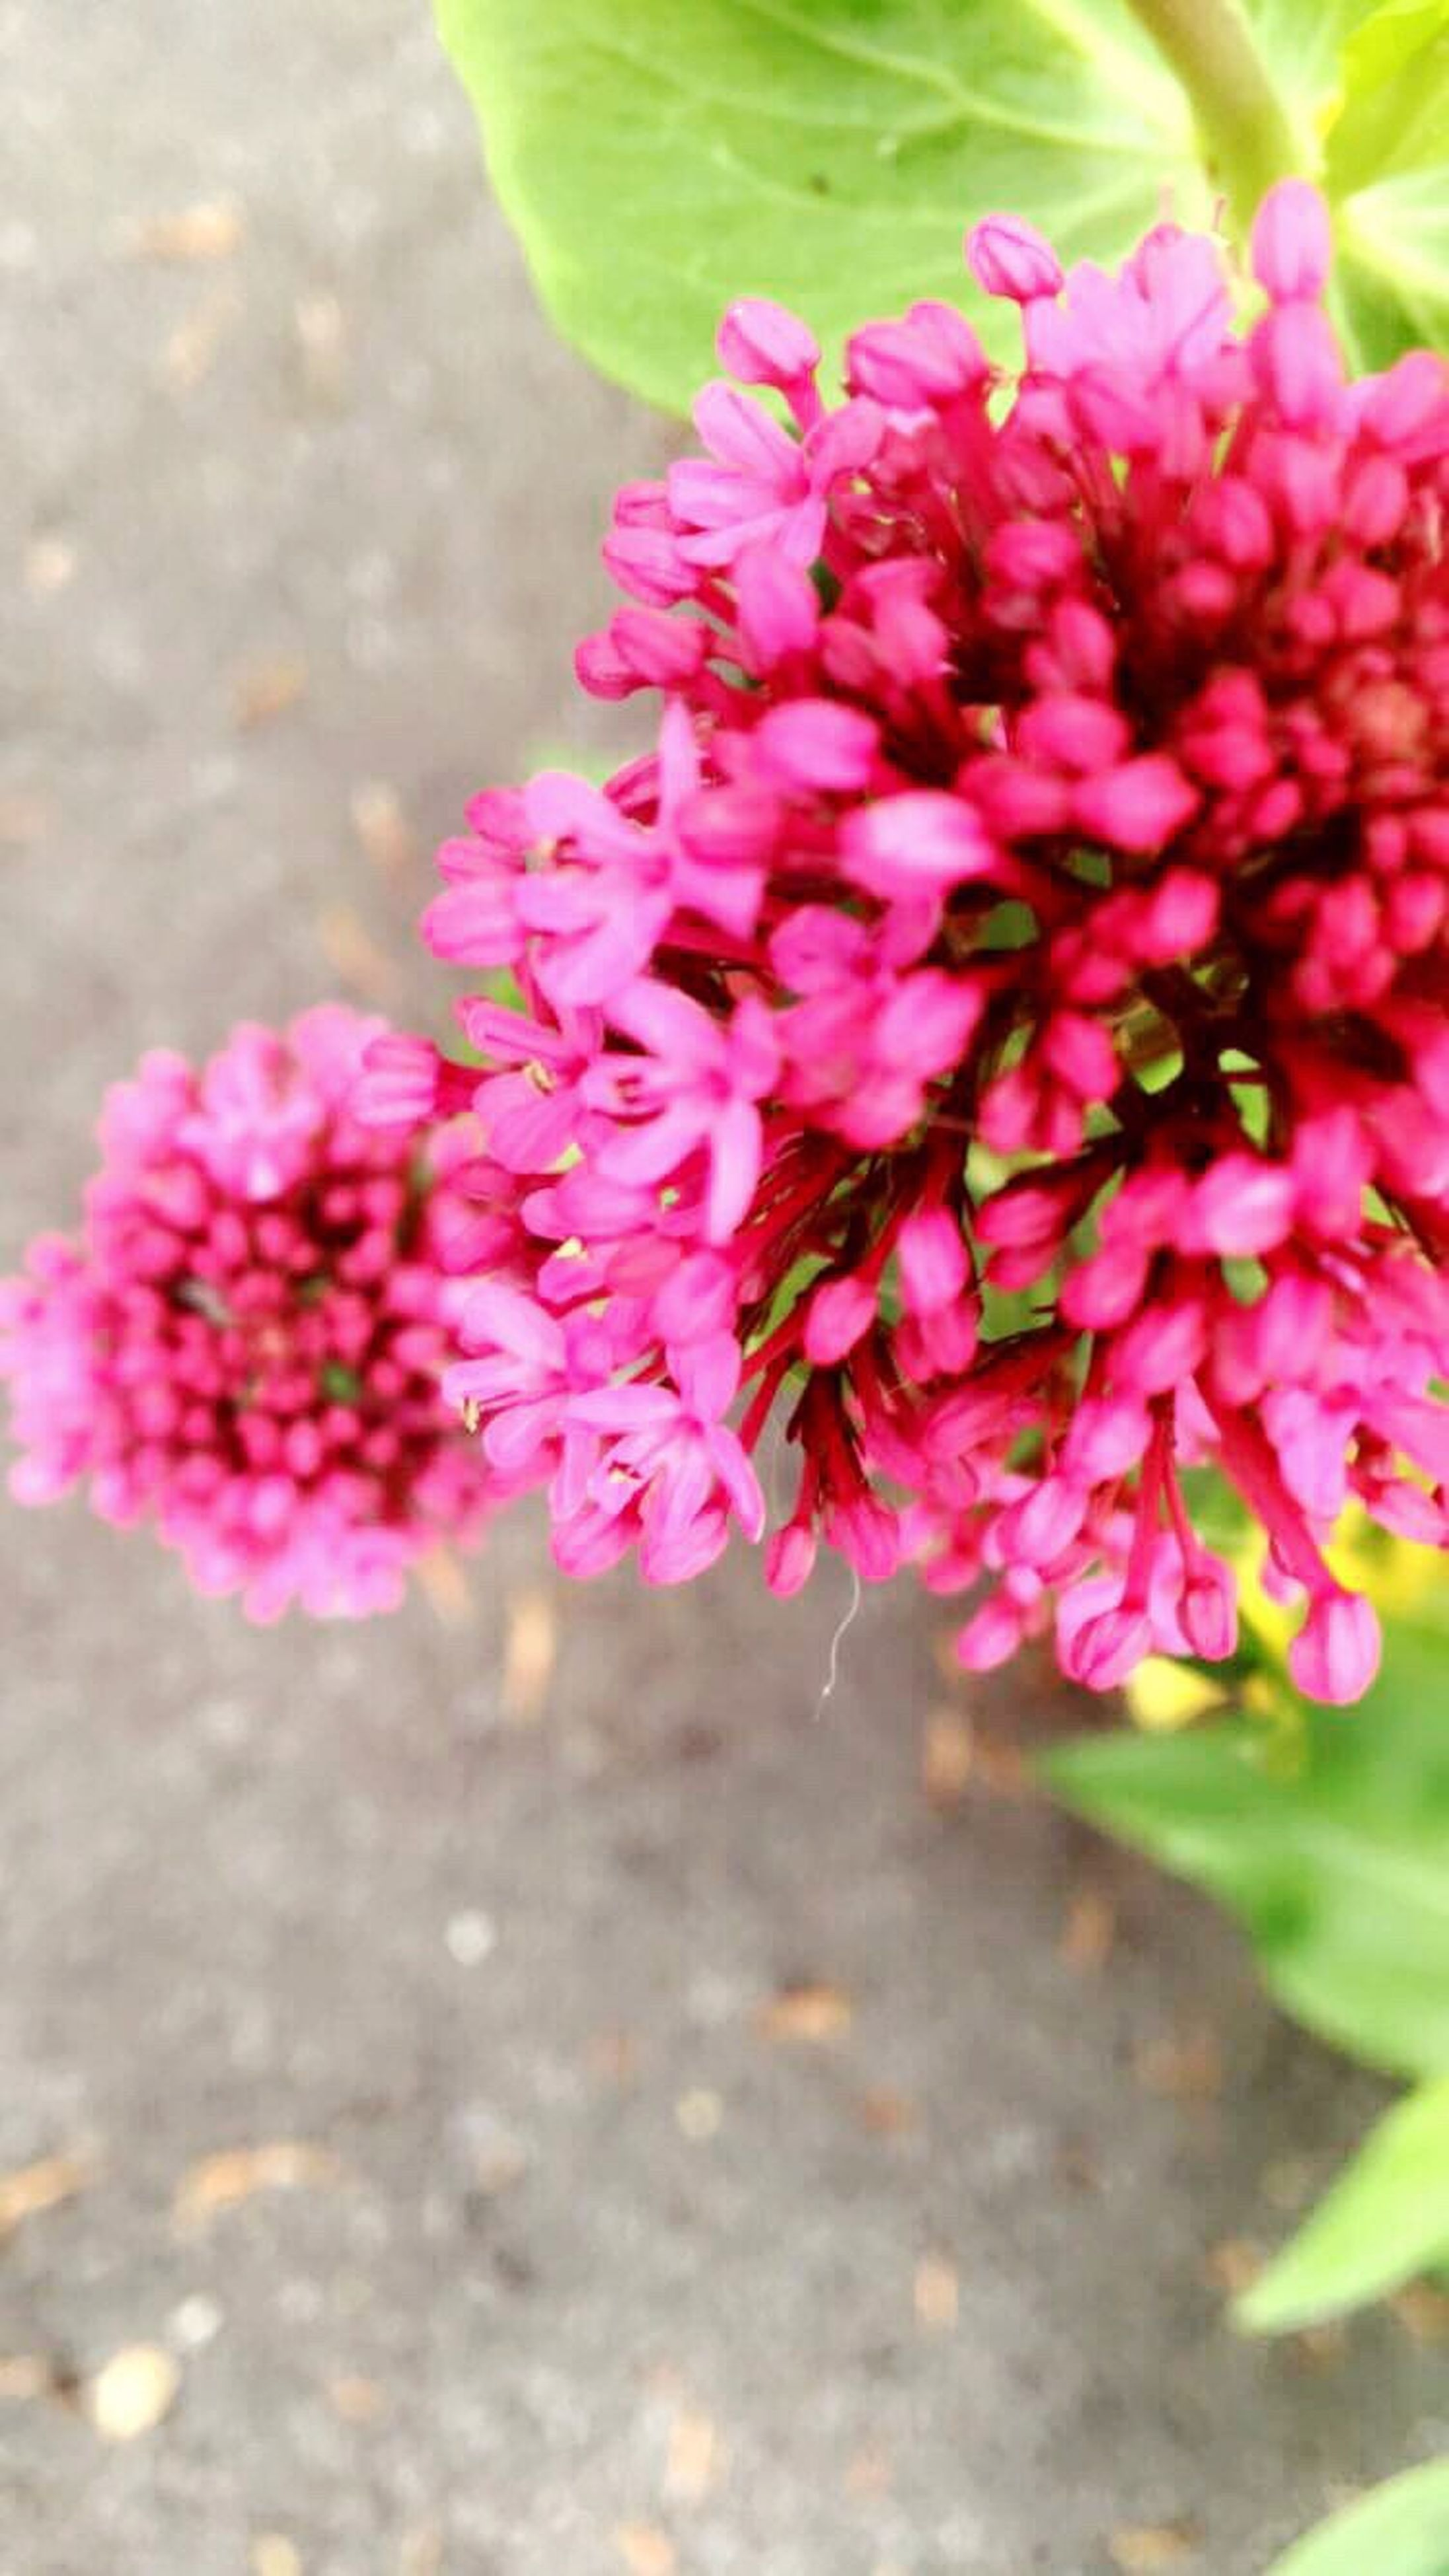 flower, pink color, pink, plant, nature, growth, delicate, blooming, no people, road, outdoors, freshness, day